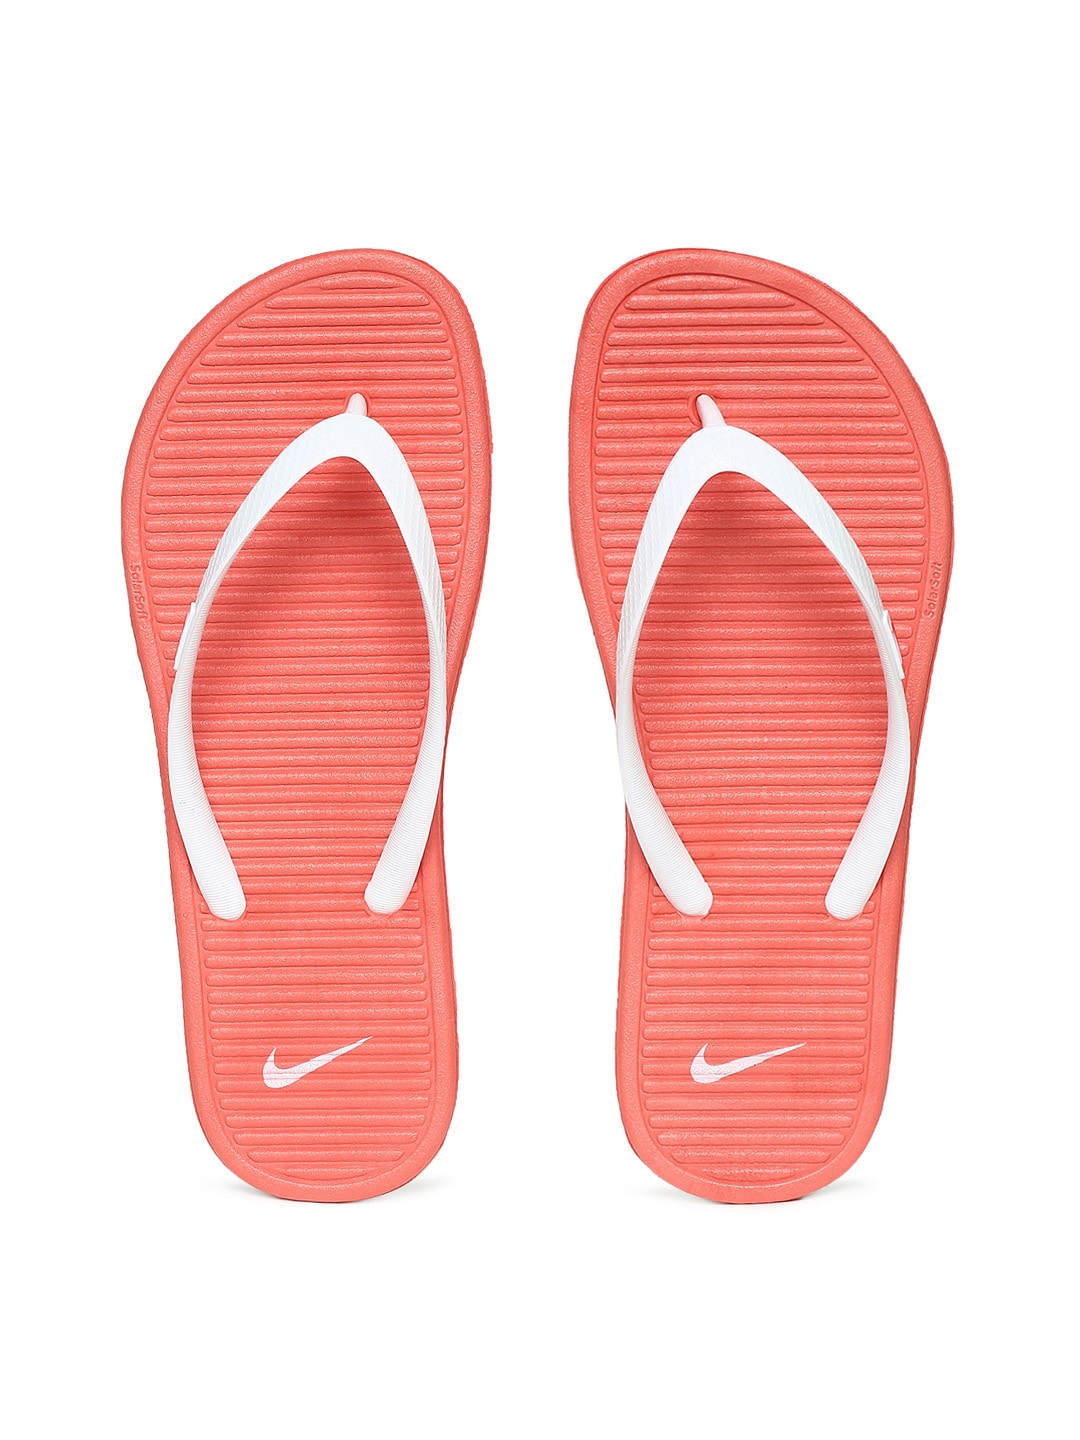 49fcff9028f3 Nike Flip-Flops - Buy Nike Flip-Flops for Men Women Online